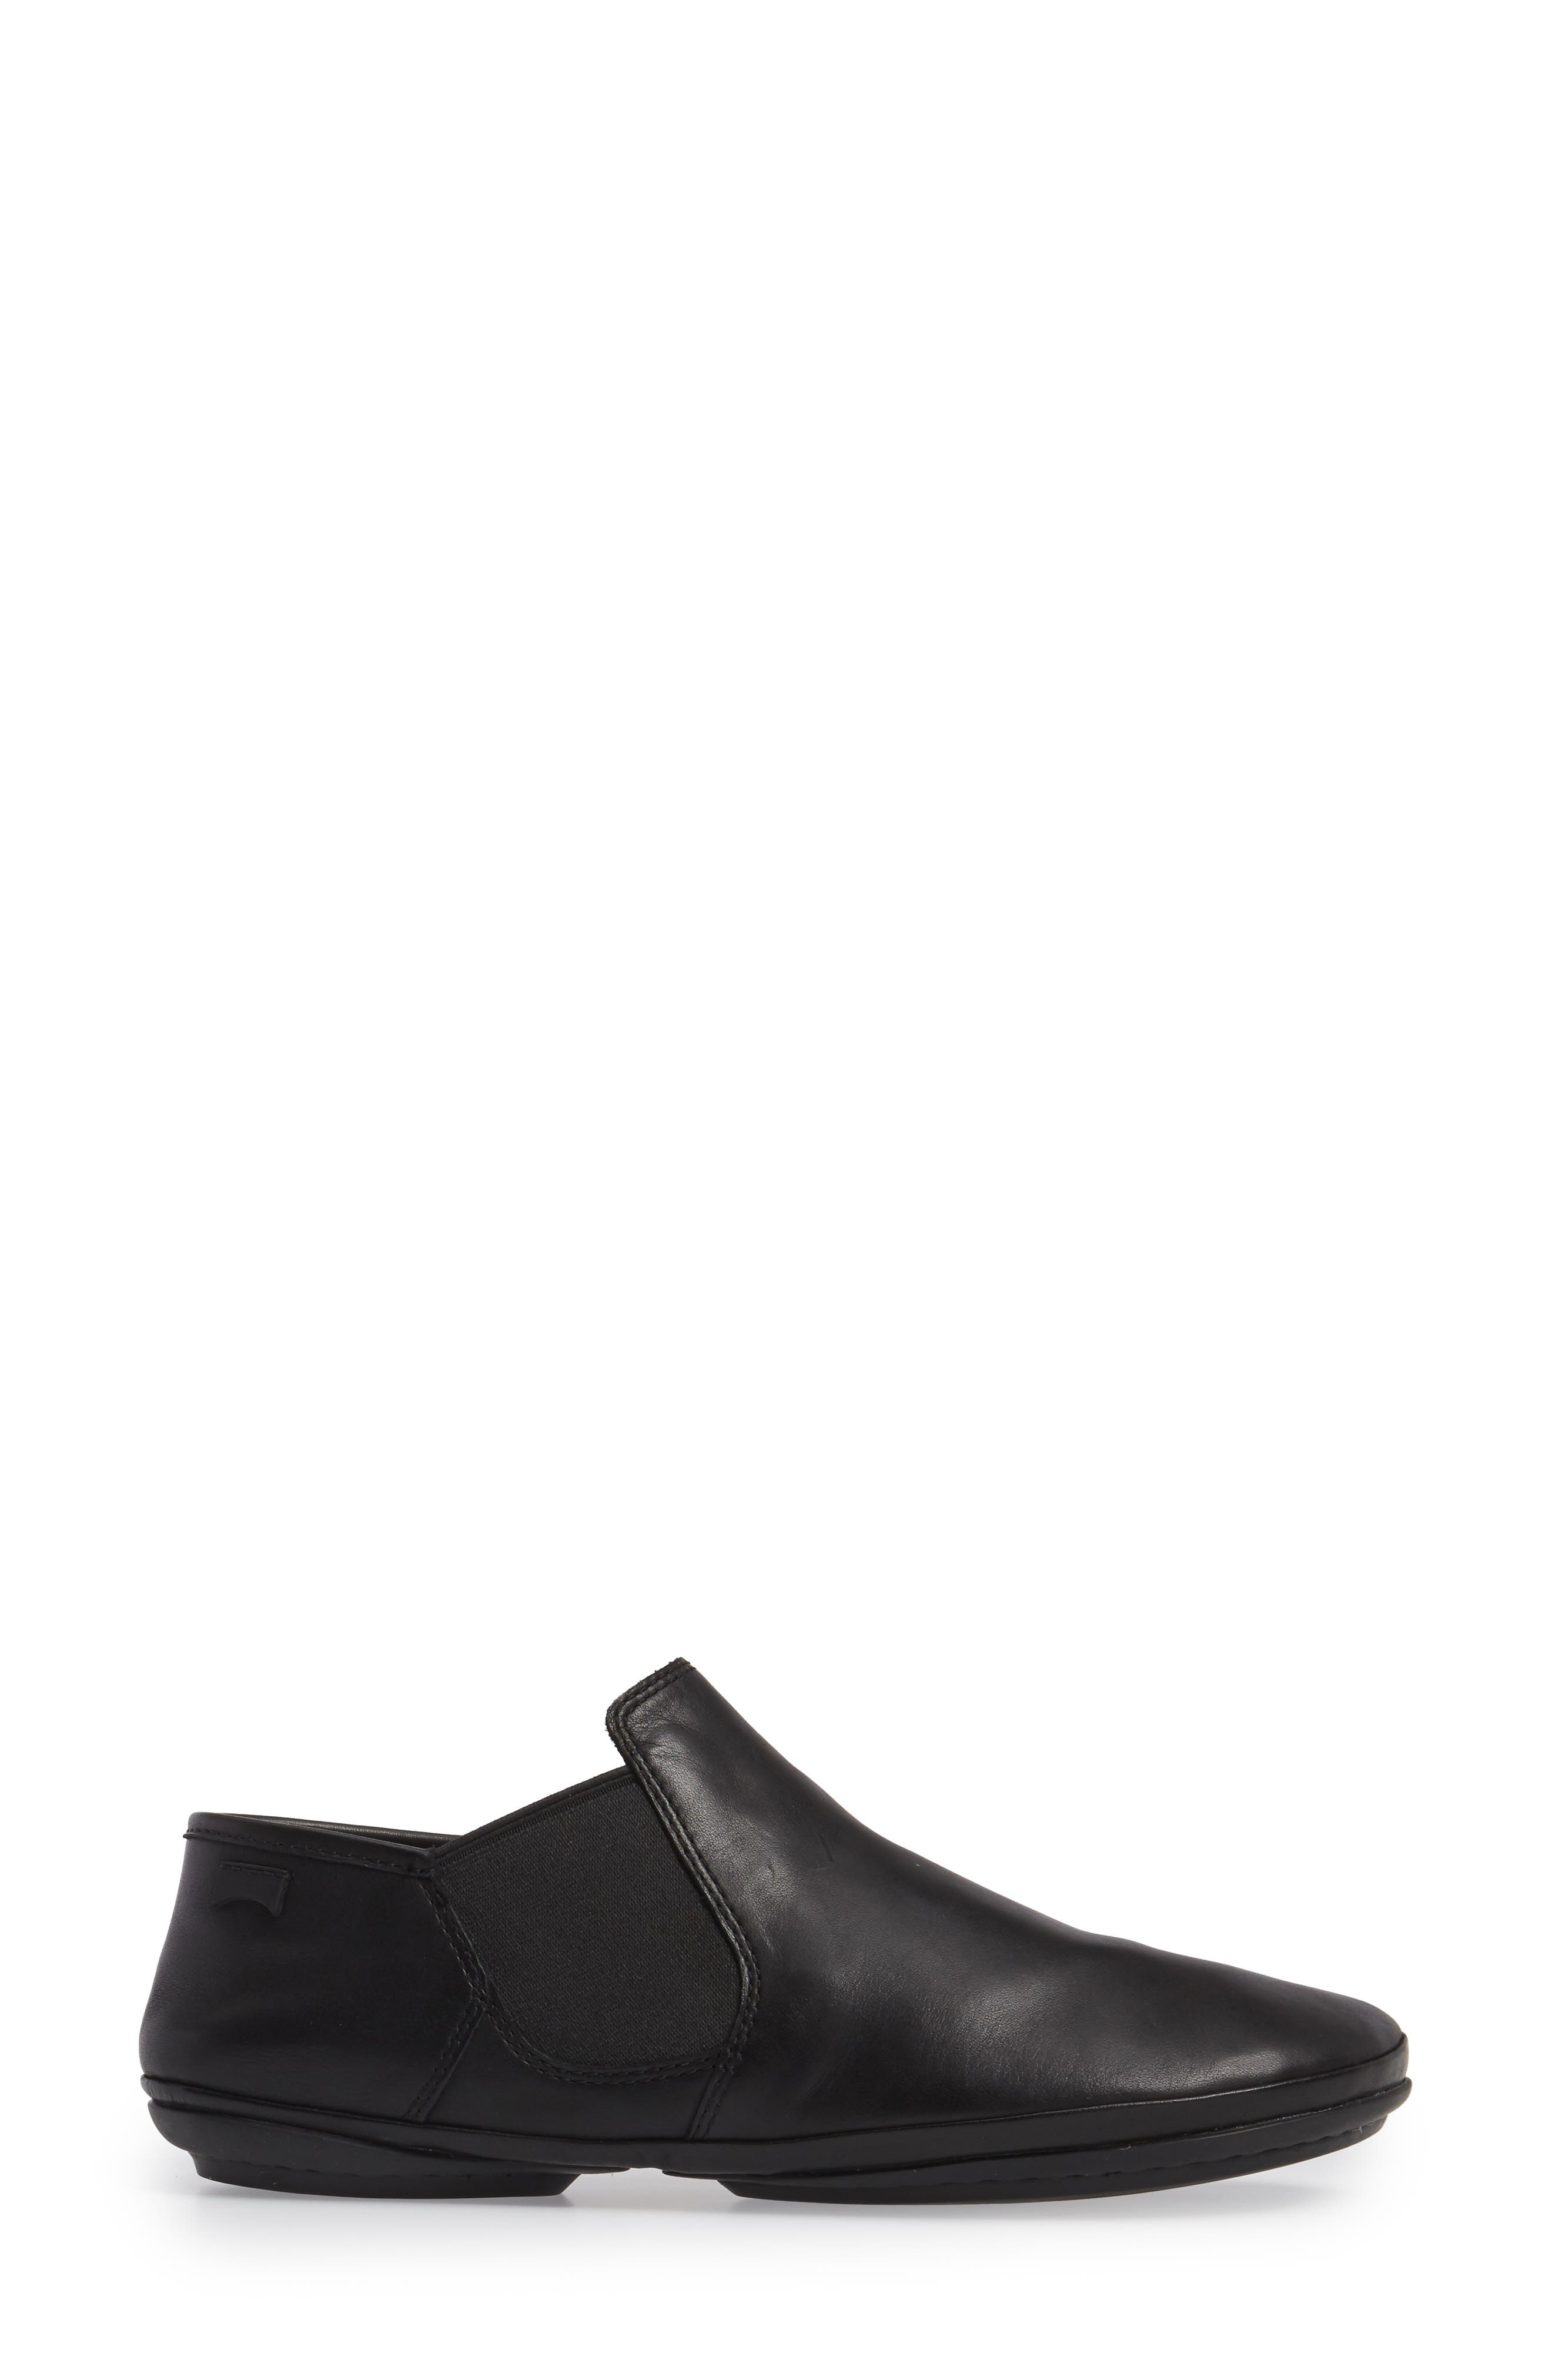 'Right Nina' Bootie,                             Alternate thumbnail 3, color,                             BLACK LEATHER